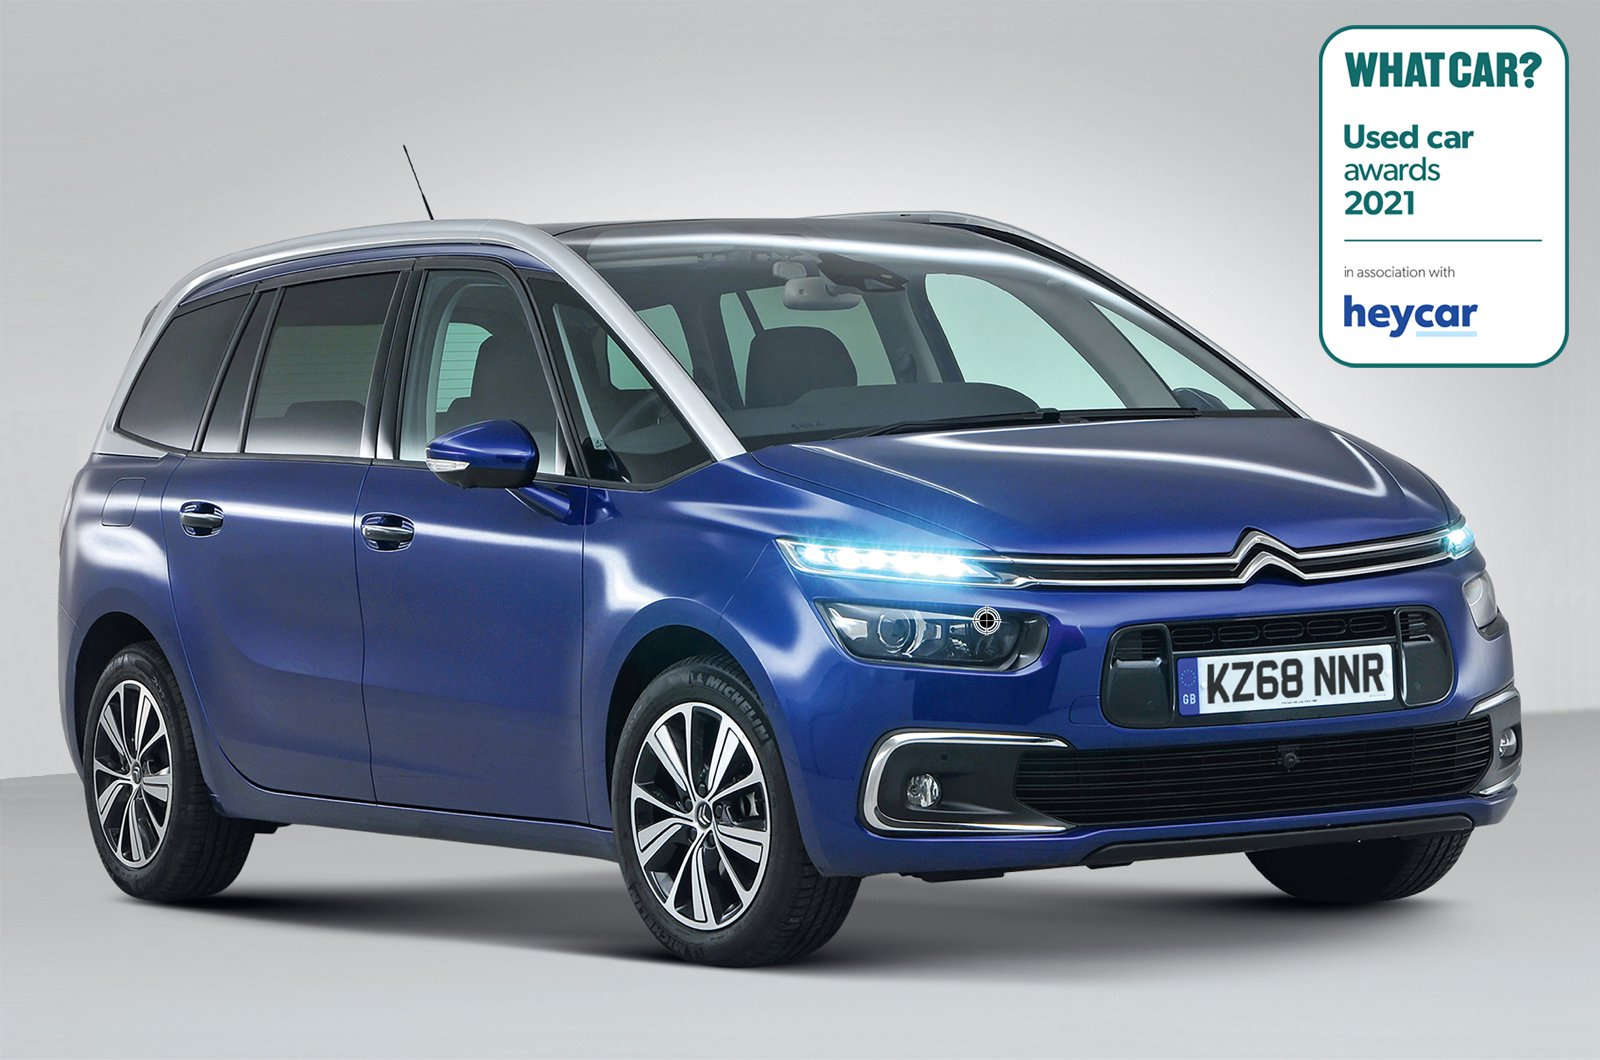 Used Car Awards 2021 - Citroen Grand C4 Spacetourer